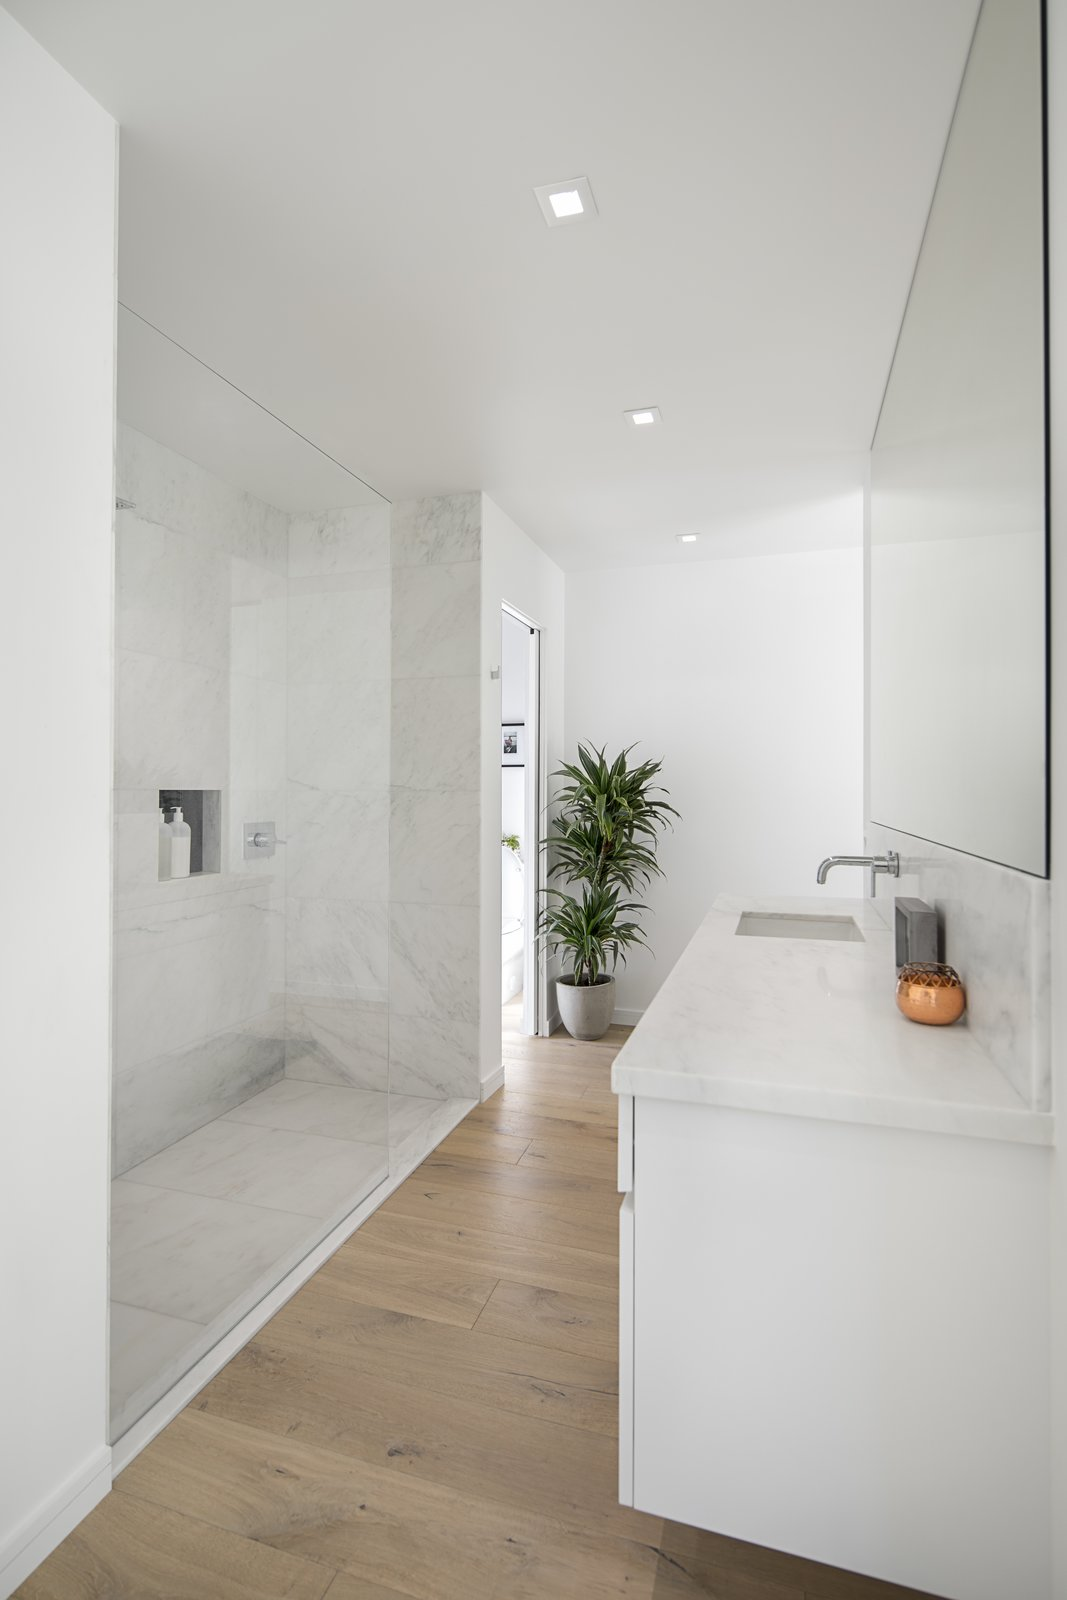 Tagged: Bath Room, Light Hardwood Floor, Drop In Sink, Open Shower, and Ceiling Lighting.  Vista De la Cumbra by ANACAPA